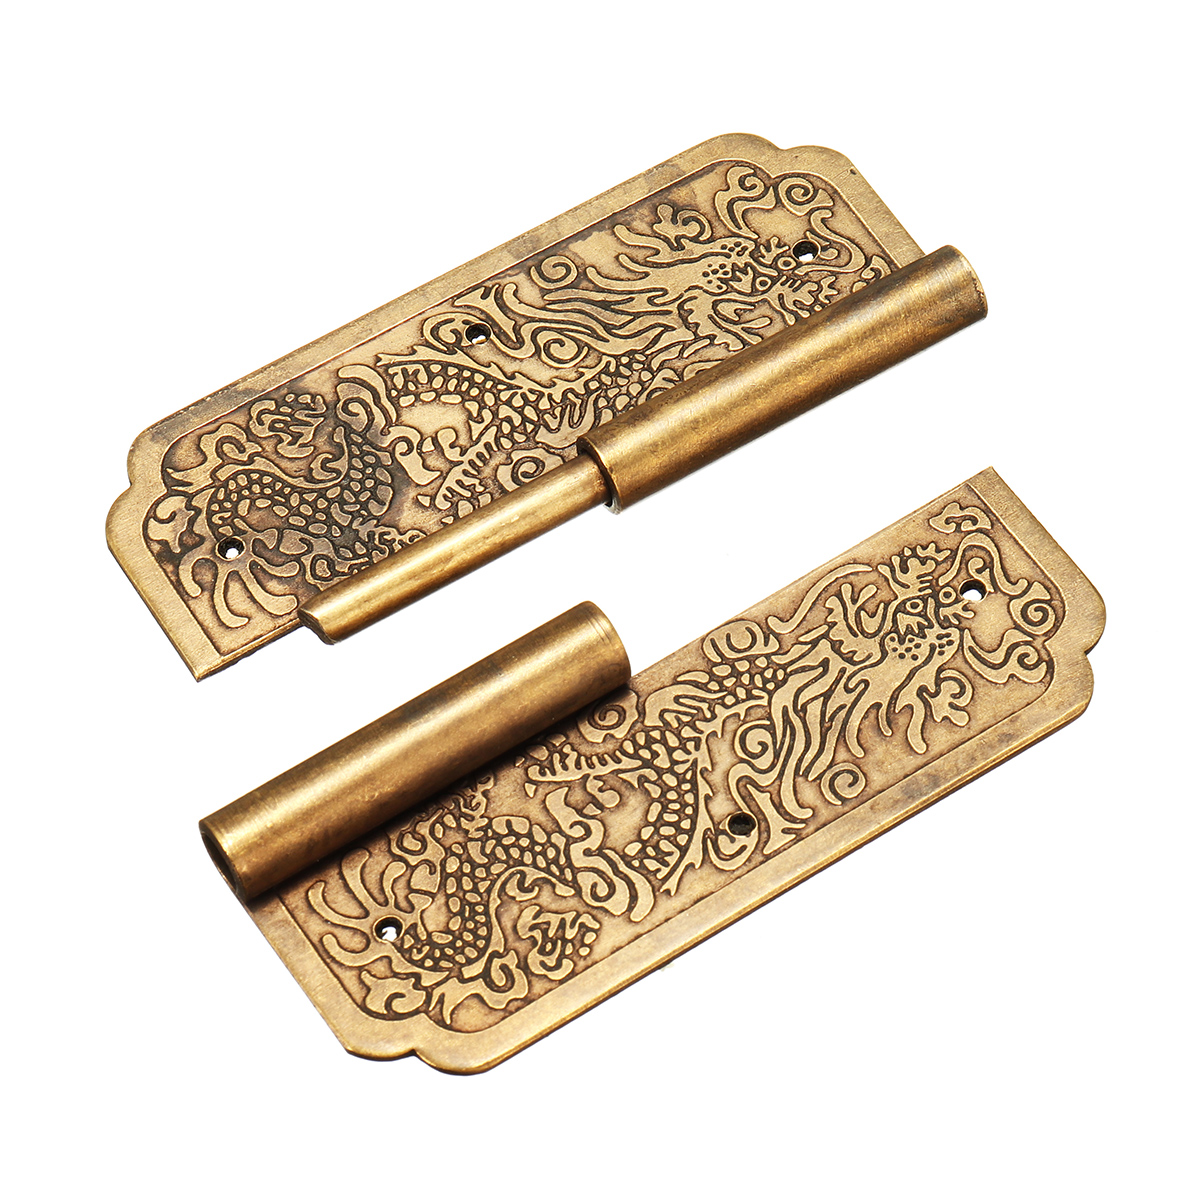 Door Hinge Chinese Furniture Brass Hardware Trunk Cabinet Door Hinges Copper Dragon 3.15'